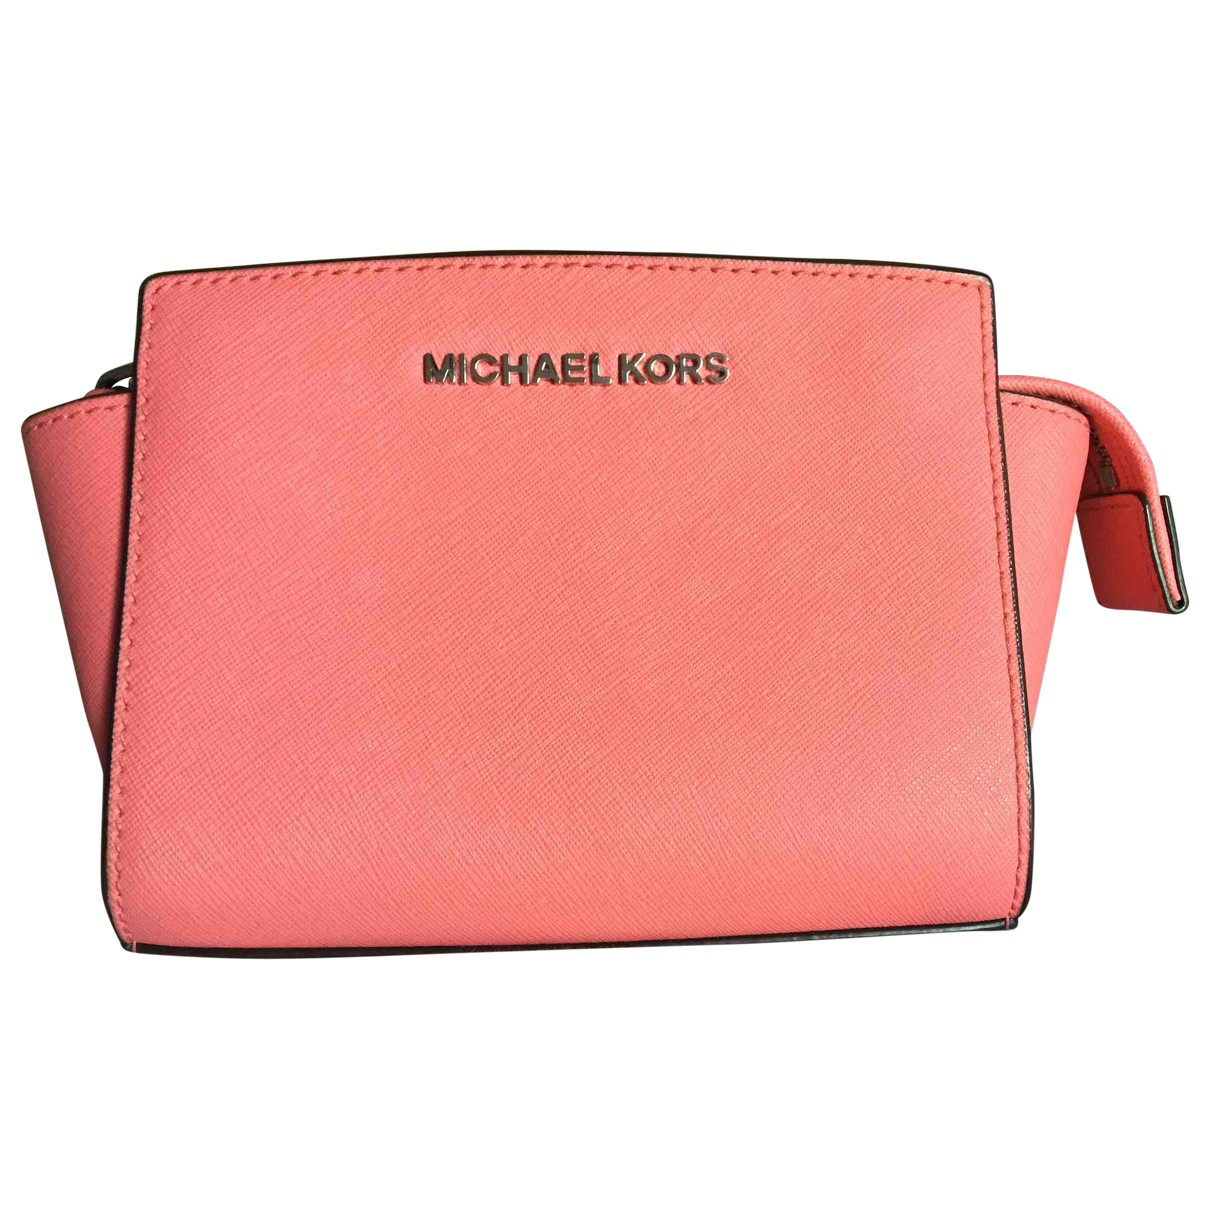 Michael Kors \N Clutch in  Rosa Leder